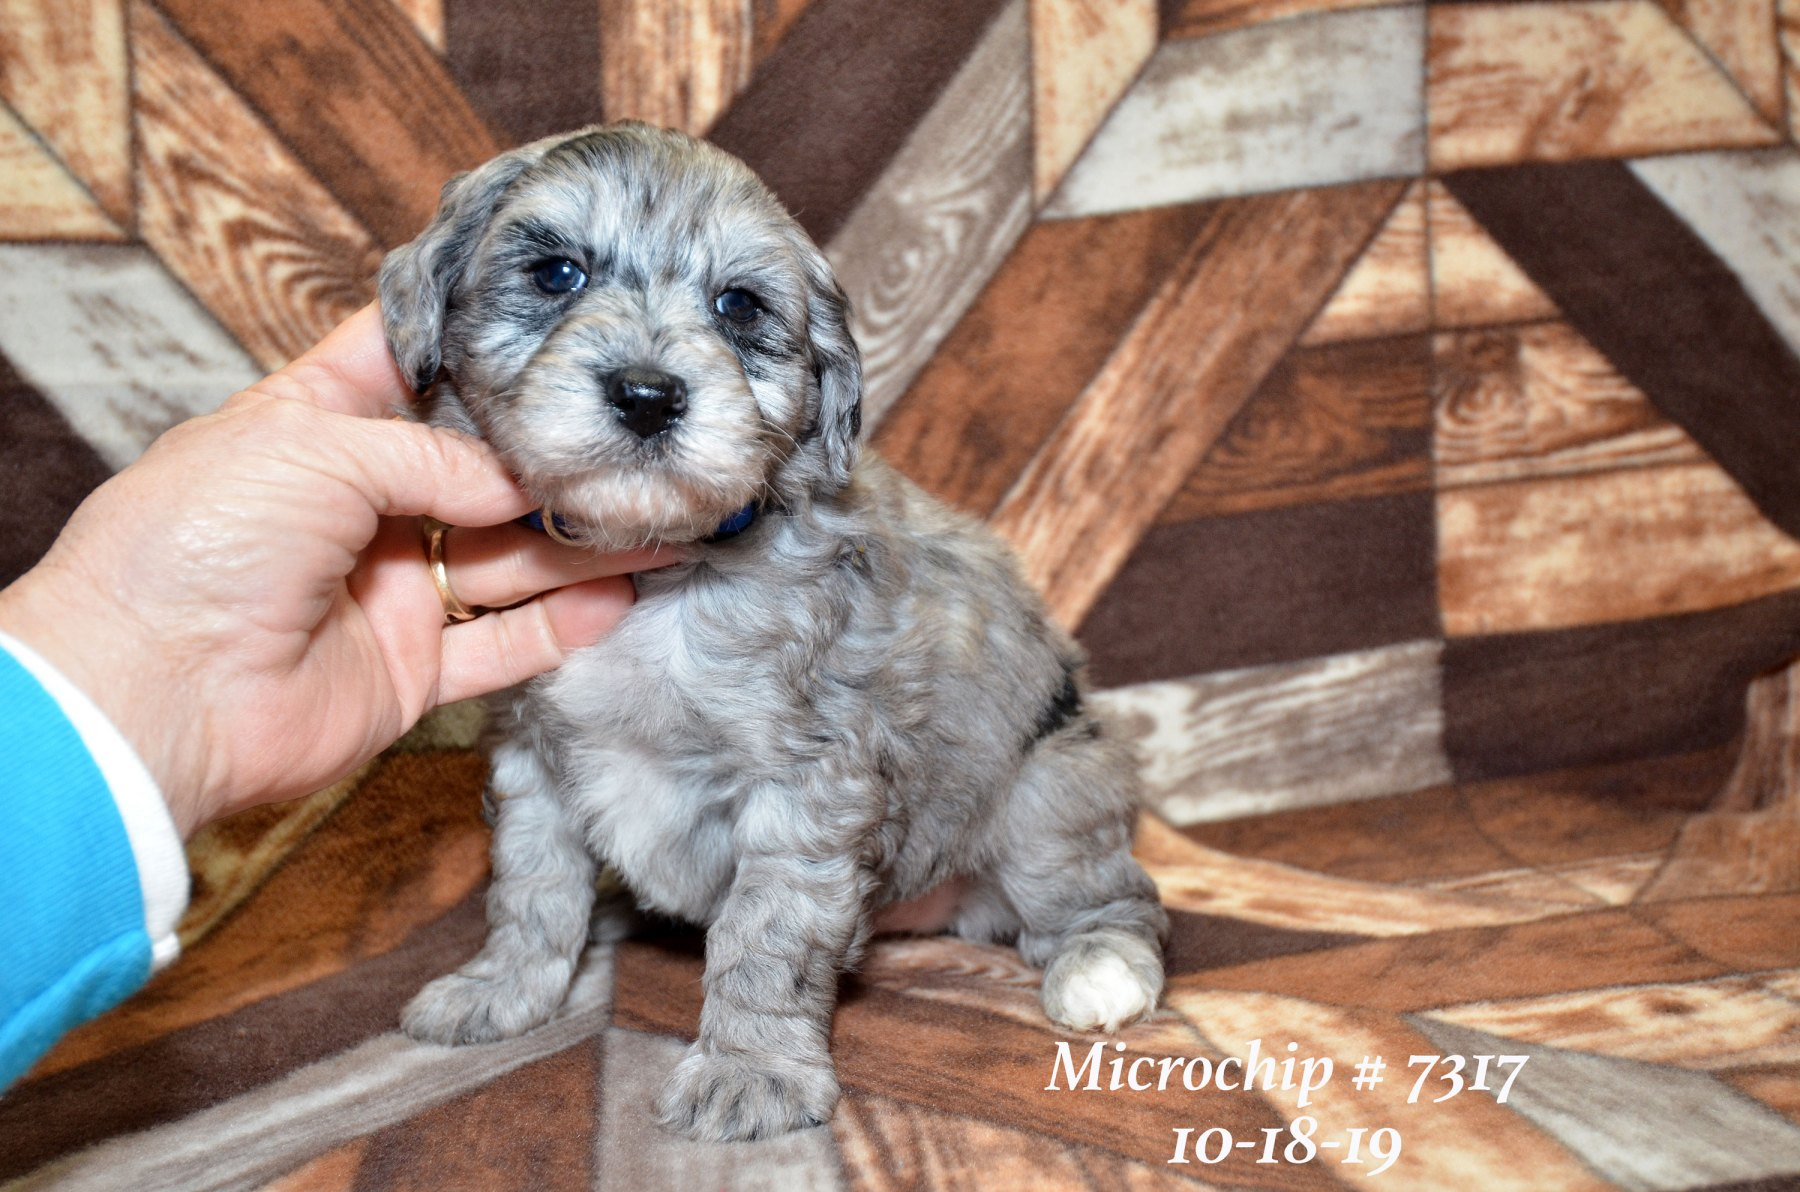 all-pups-10-15_2772